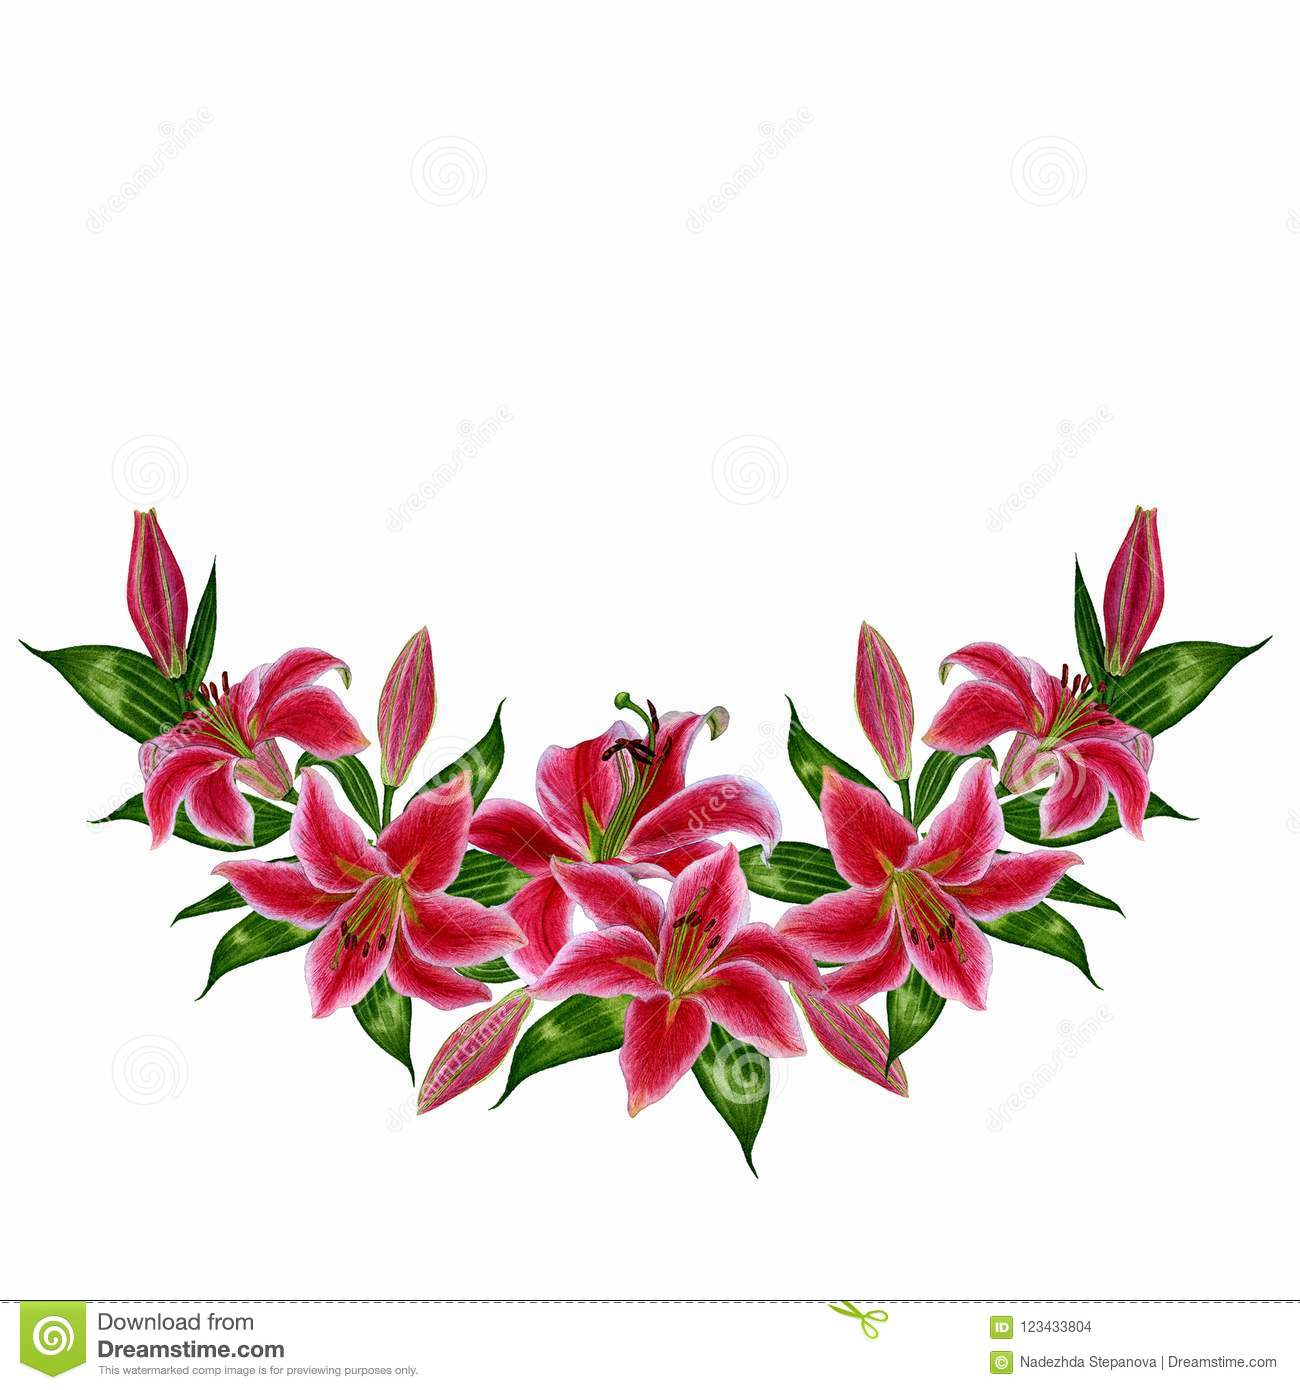 Wreath of lily flowers on white background stock illustration download wreath of lily flowers on white background stock illustration illustration of blossom izmirmasajfo